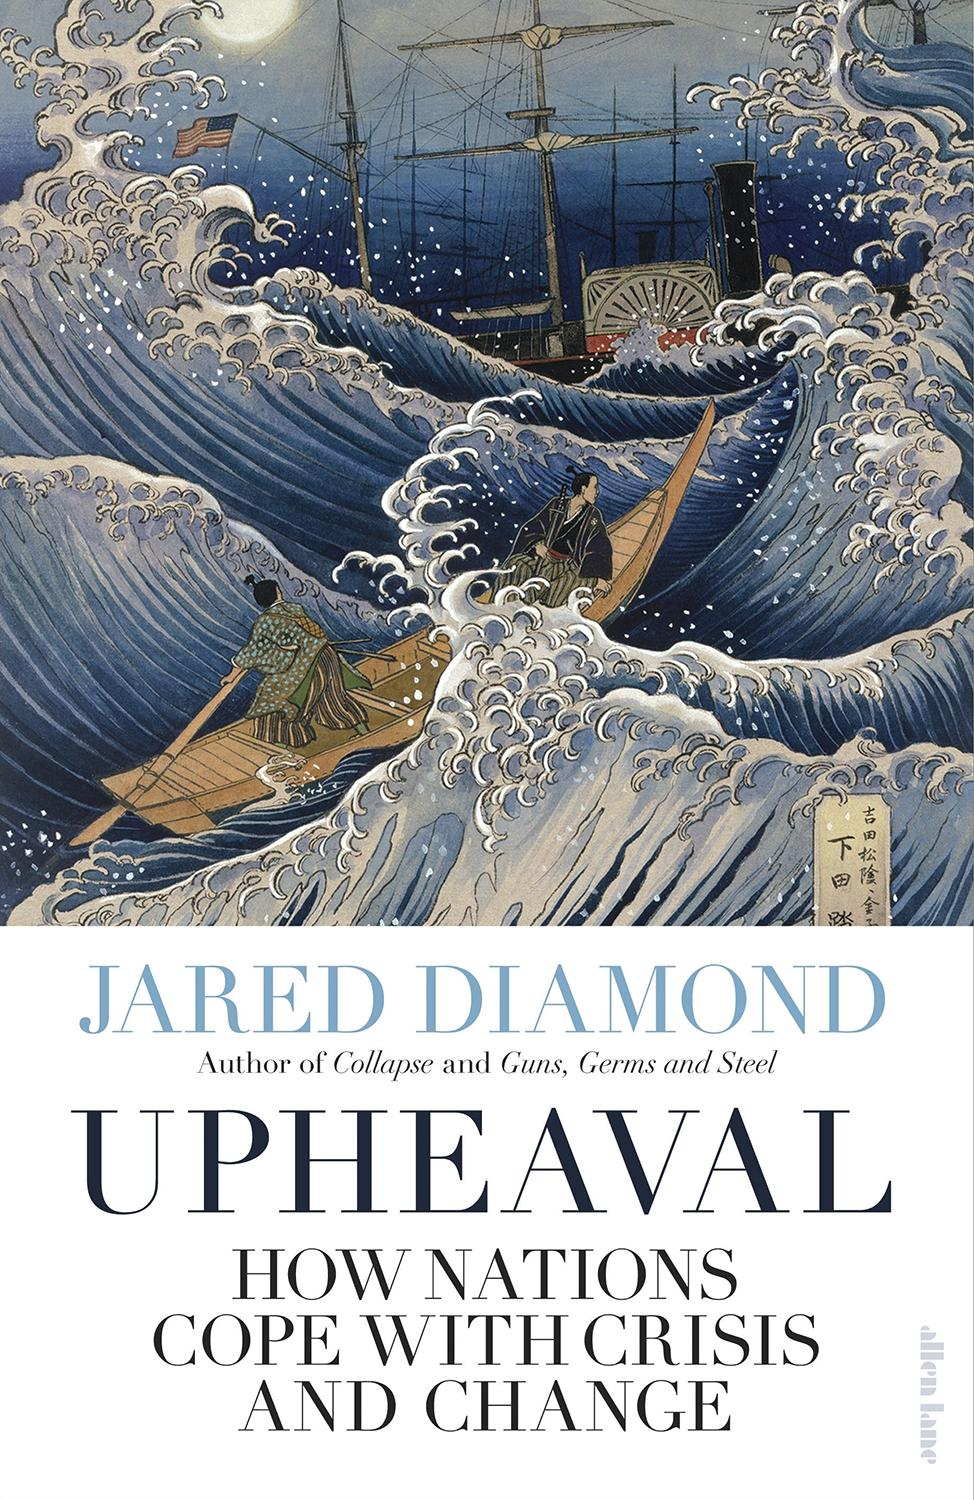 Upheaval by  Diamond Jared